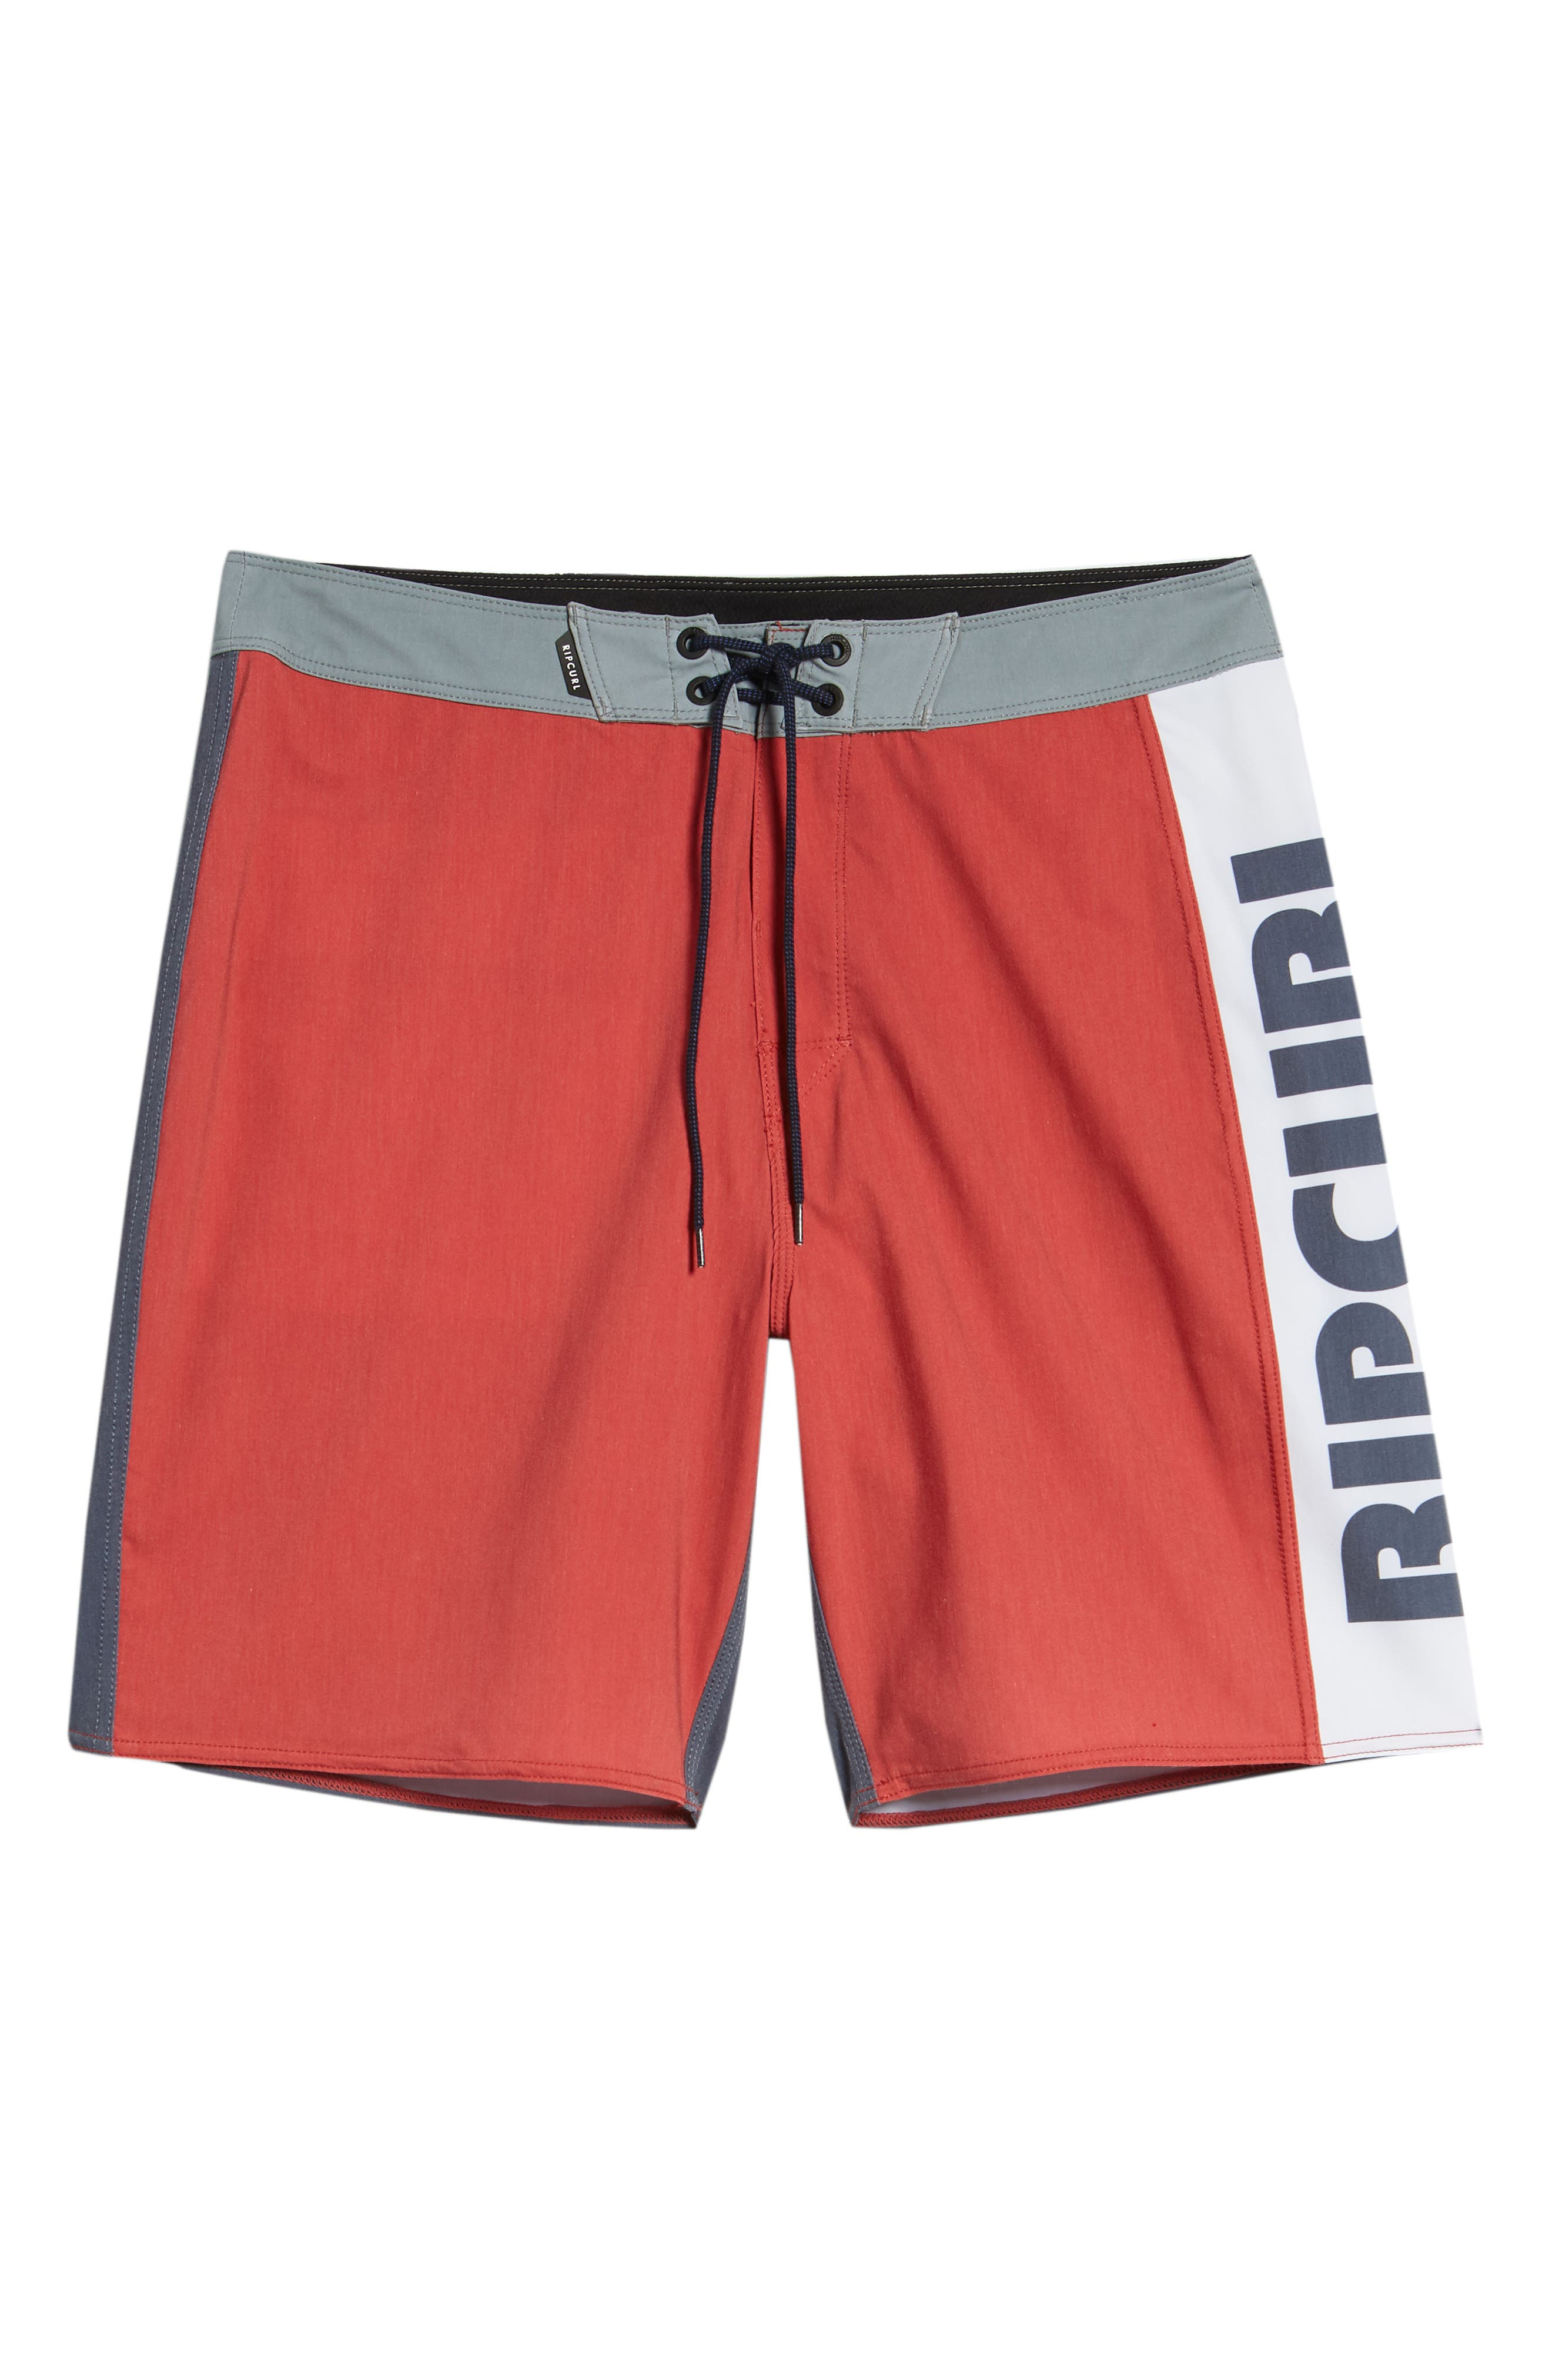 Mirage Owen Stretch Board Shorts,                             Alternate thumbnail 6, color,                             Red